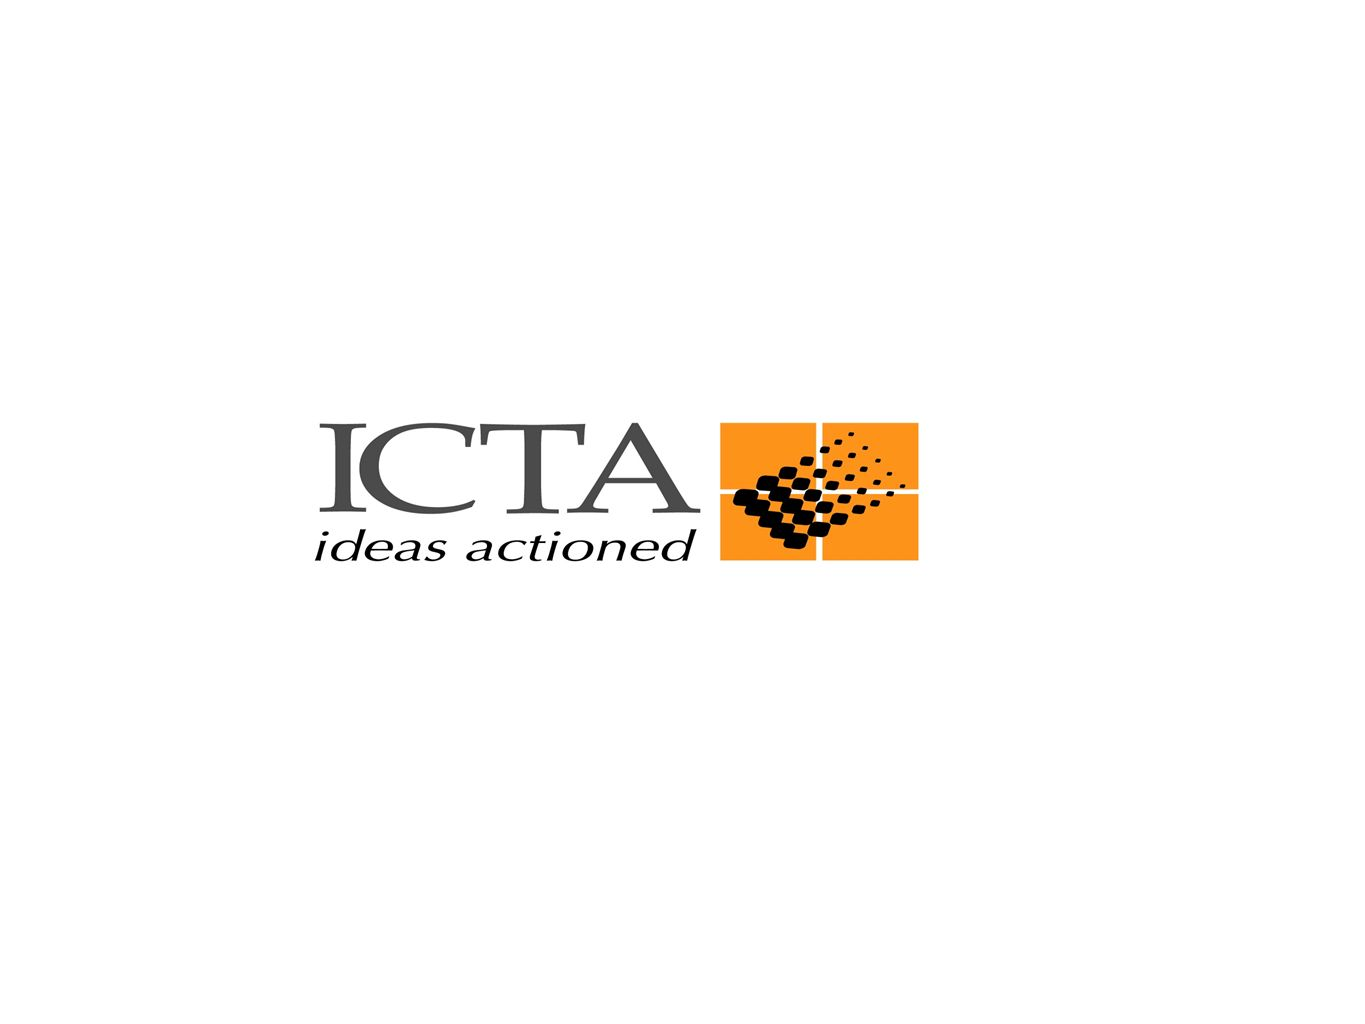 ICTA Workshop on Unicode Publishing for Sinhala and Tamil